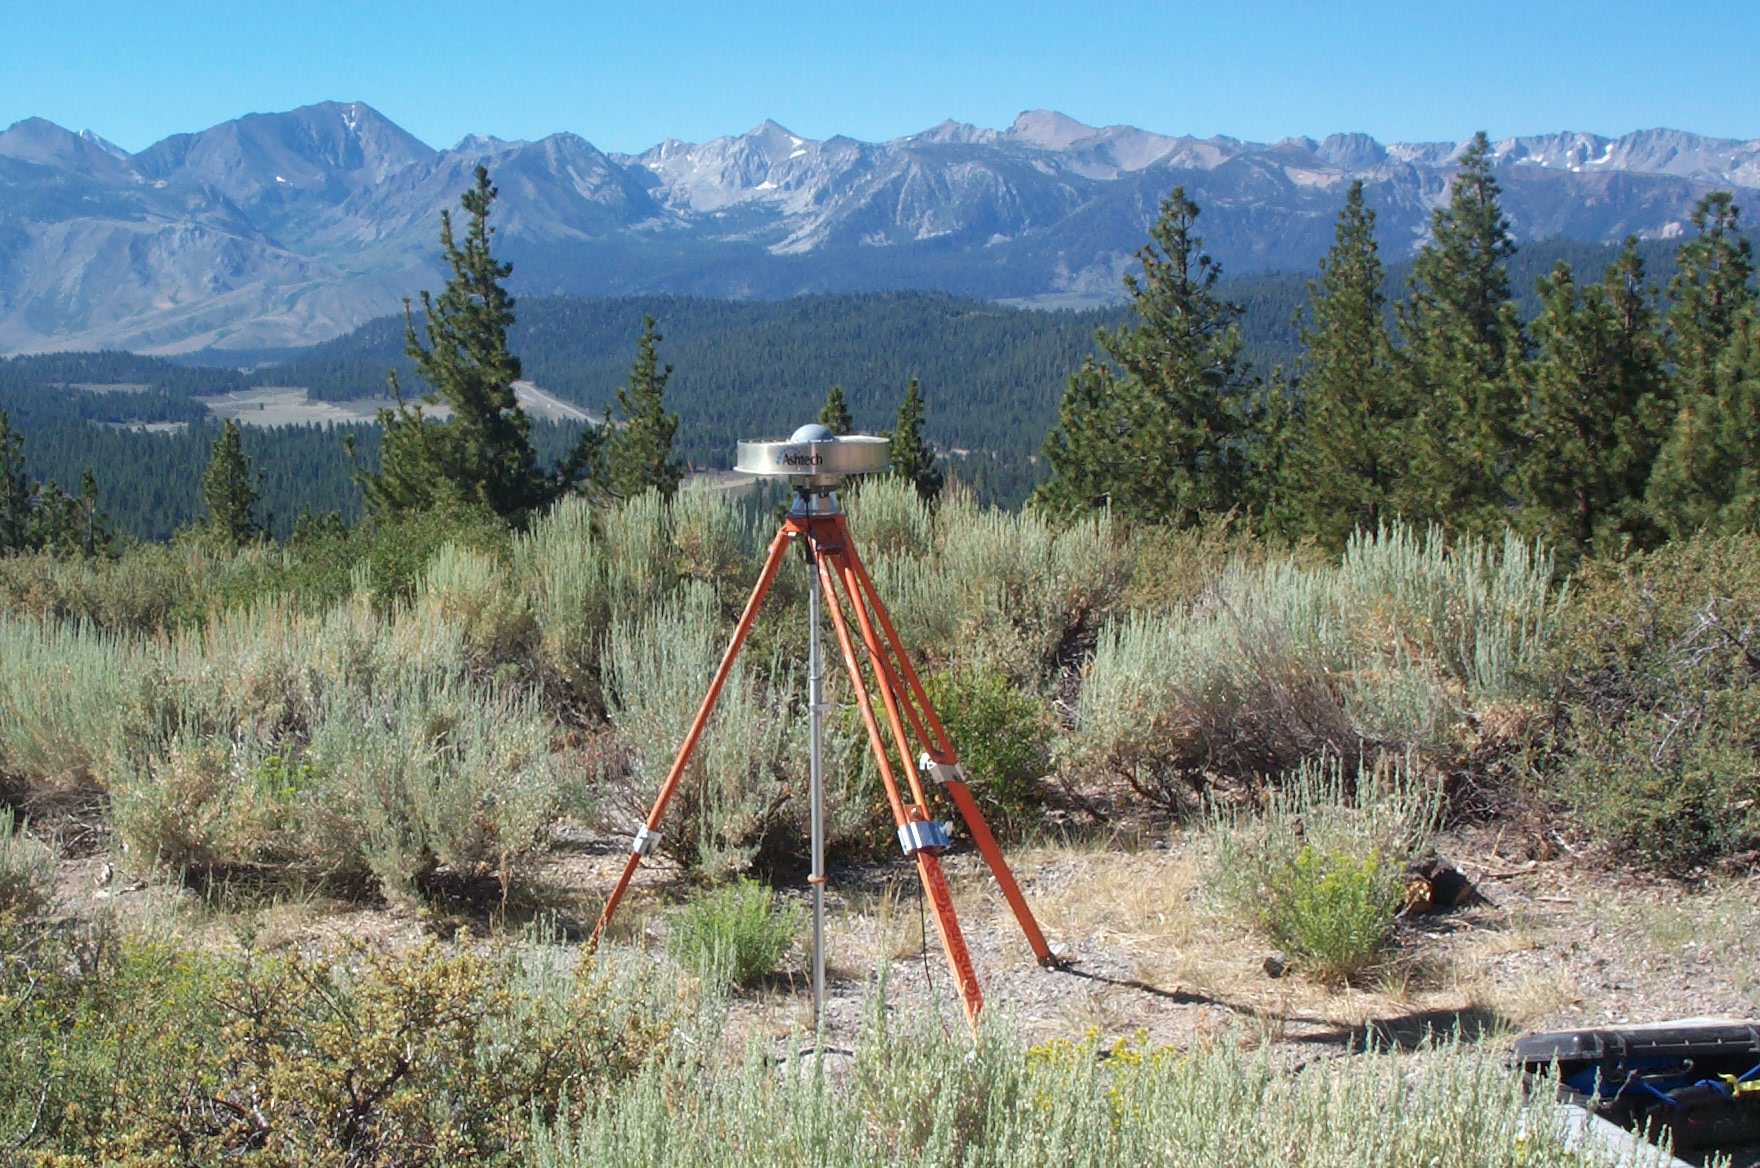 GPS station LKMT. Located on Lookout Mountain near Mammoth Lakes, California.